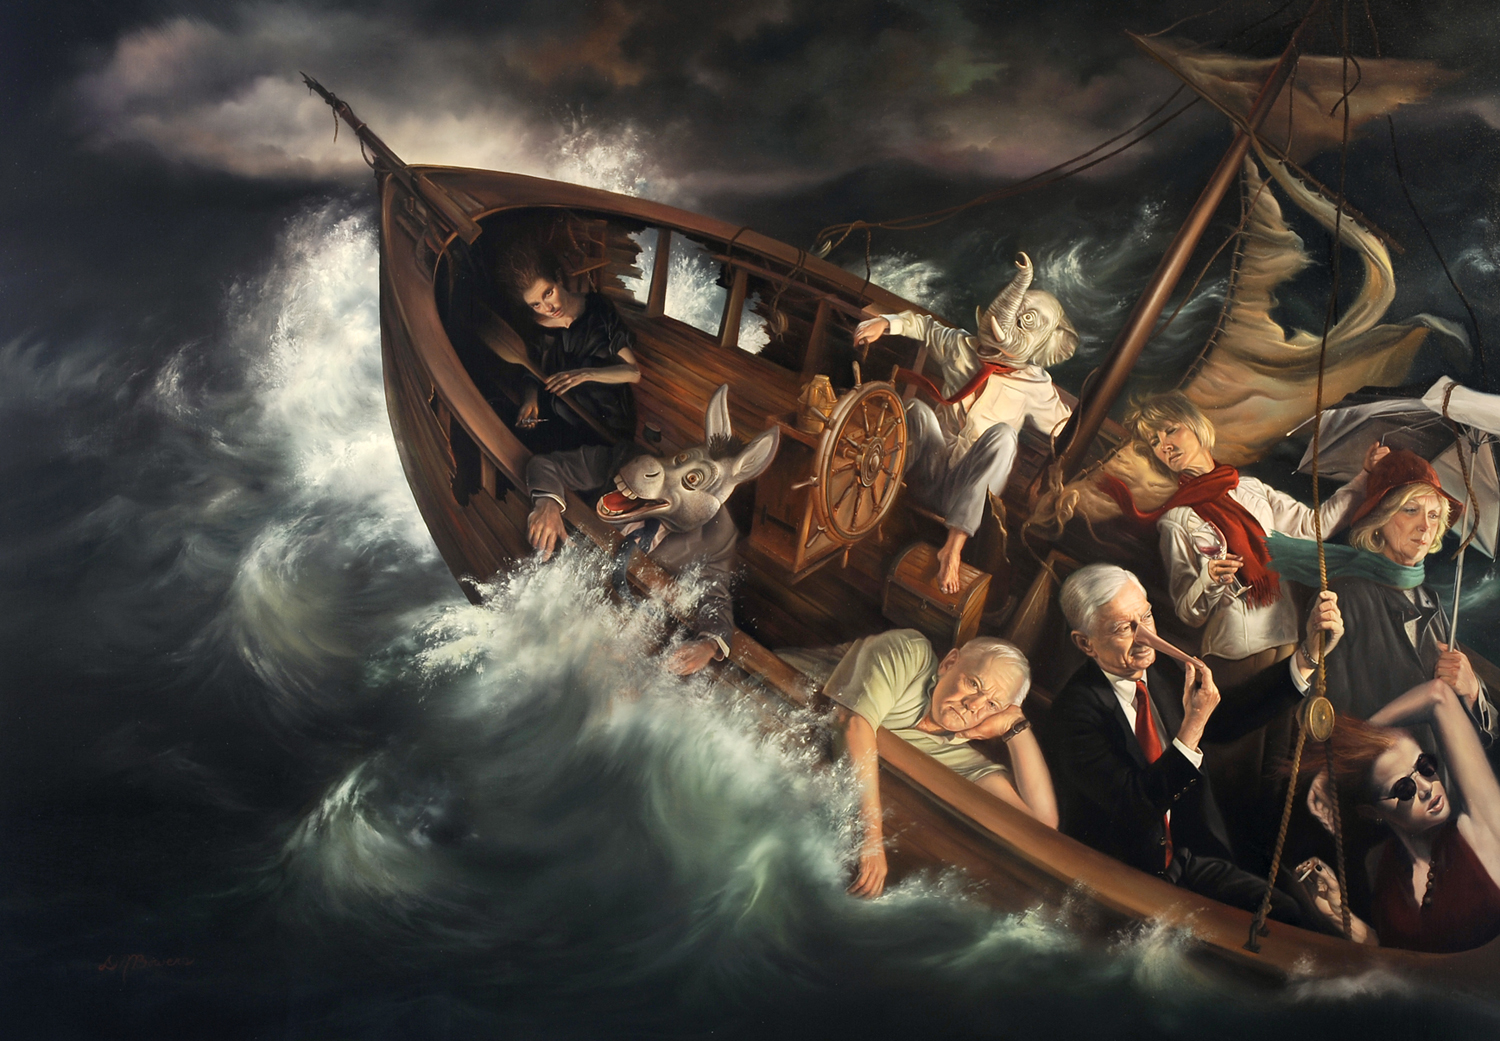 ship-of-fools-24-x-34-oil-on-linen